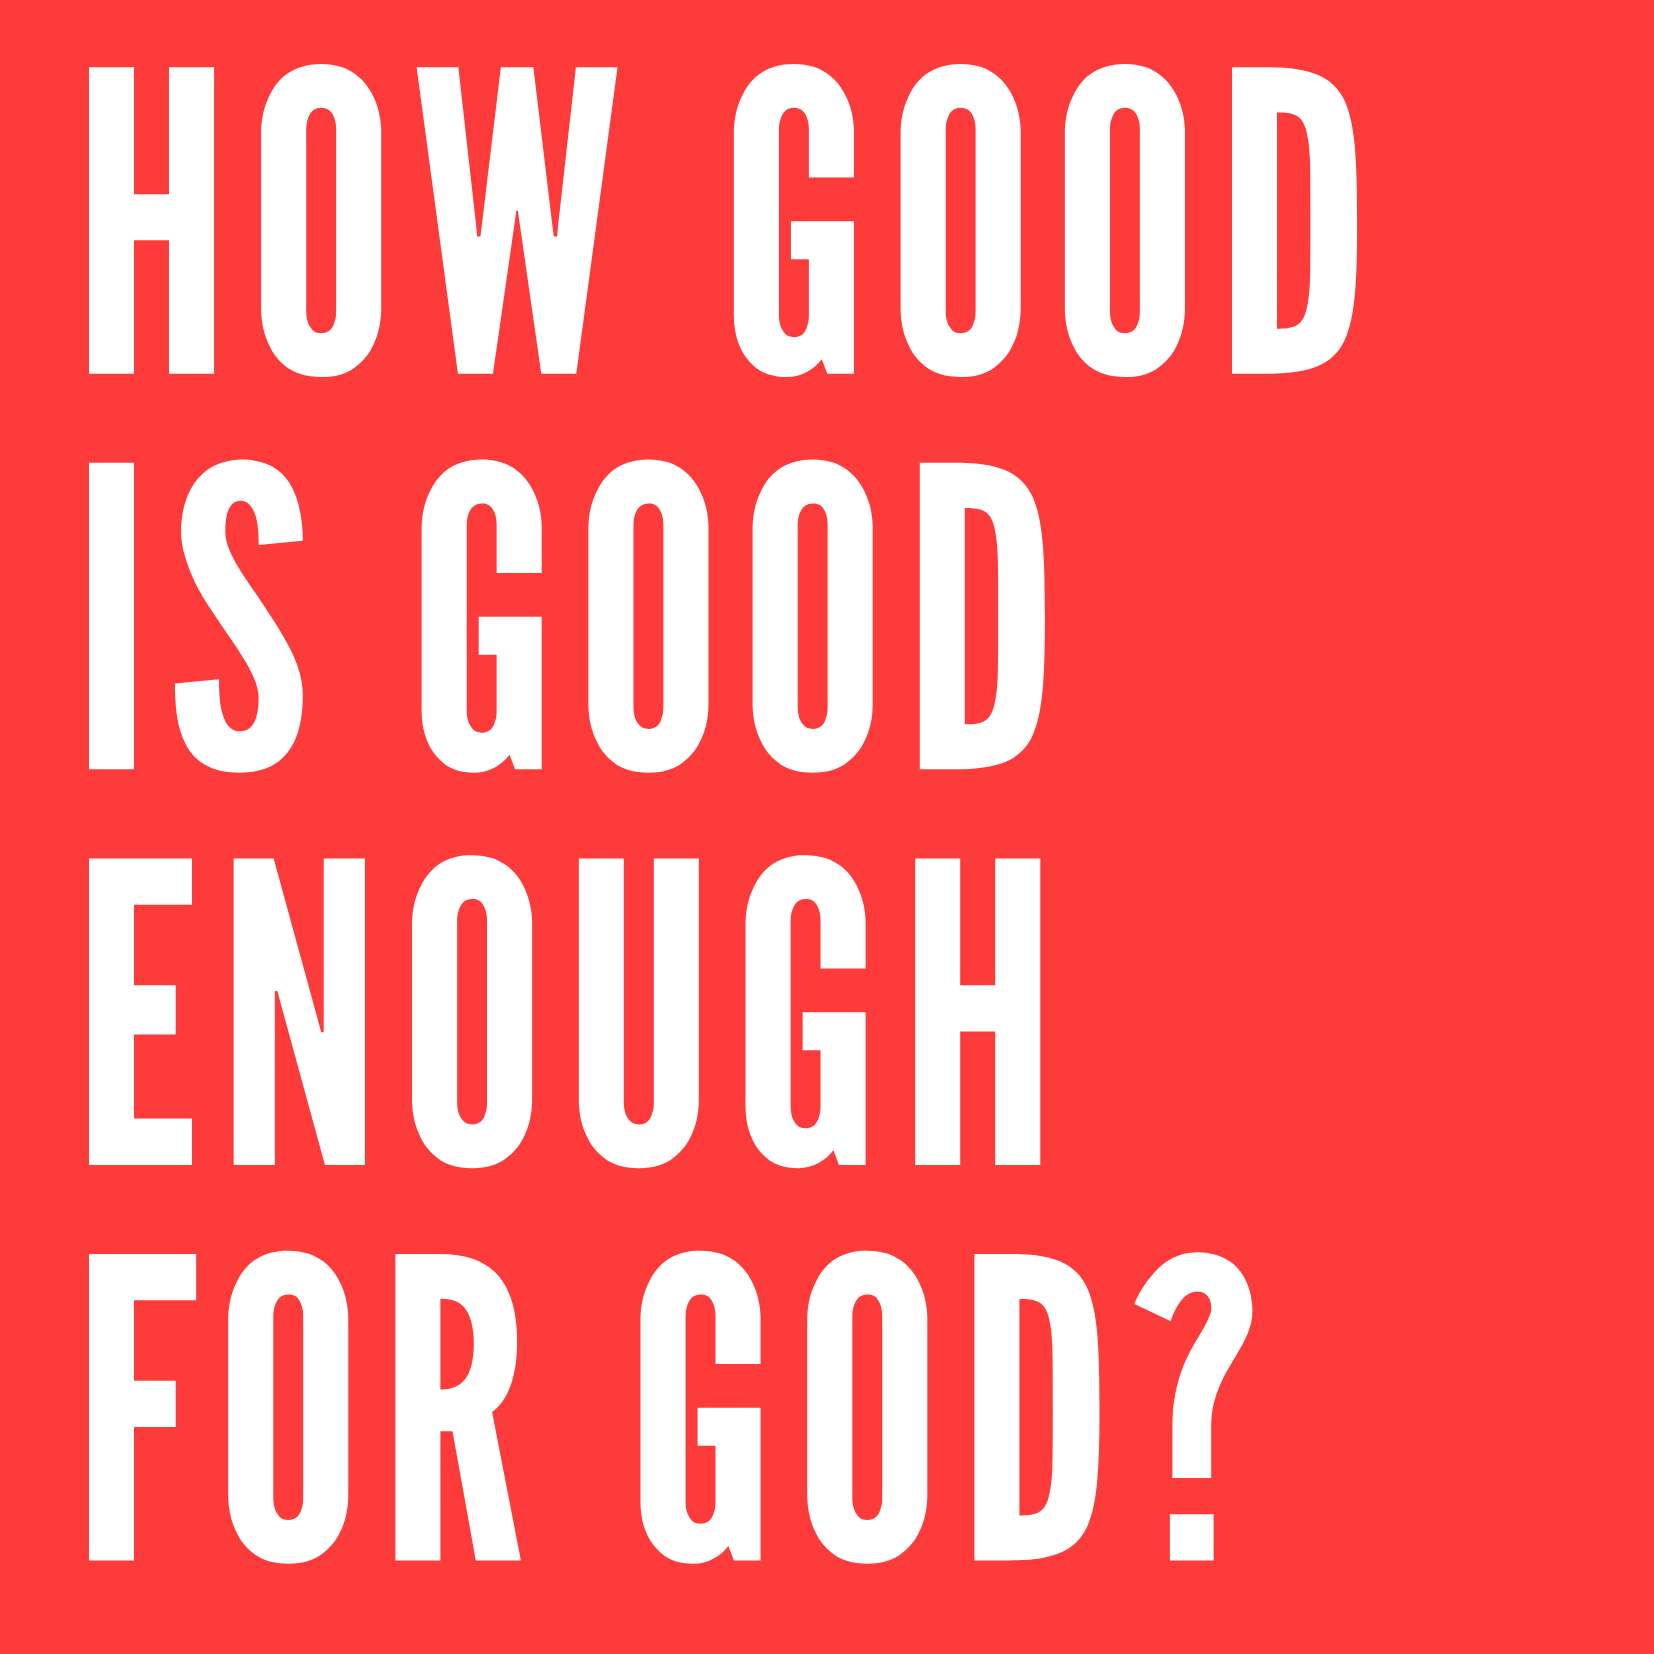 How good is good enough for God?